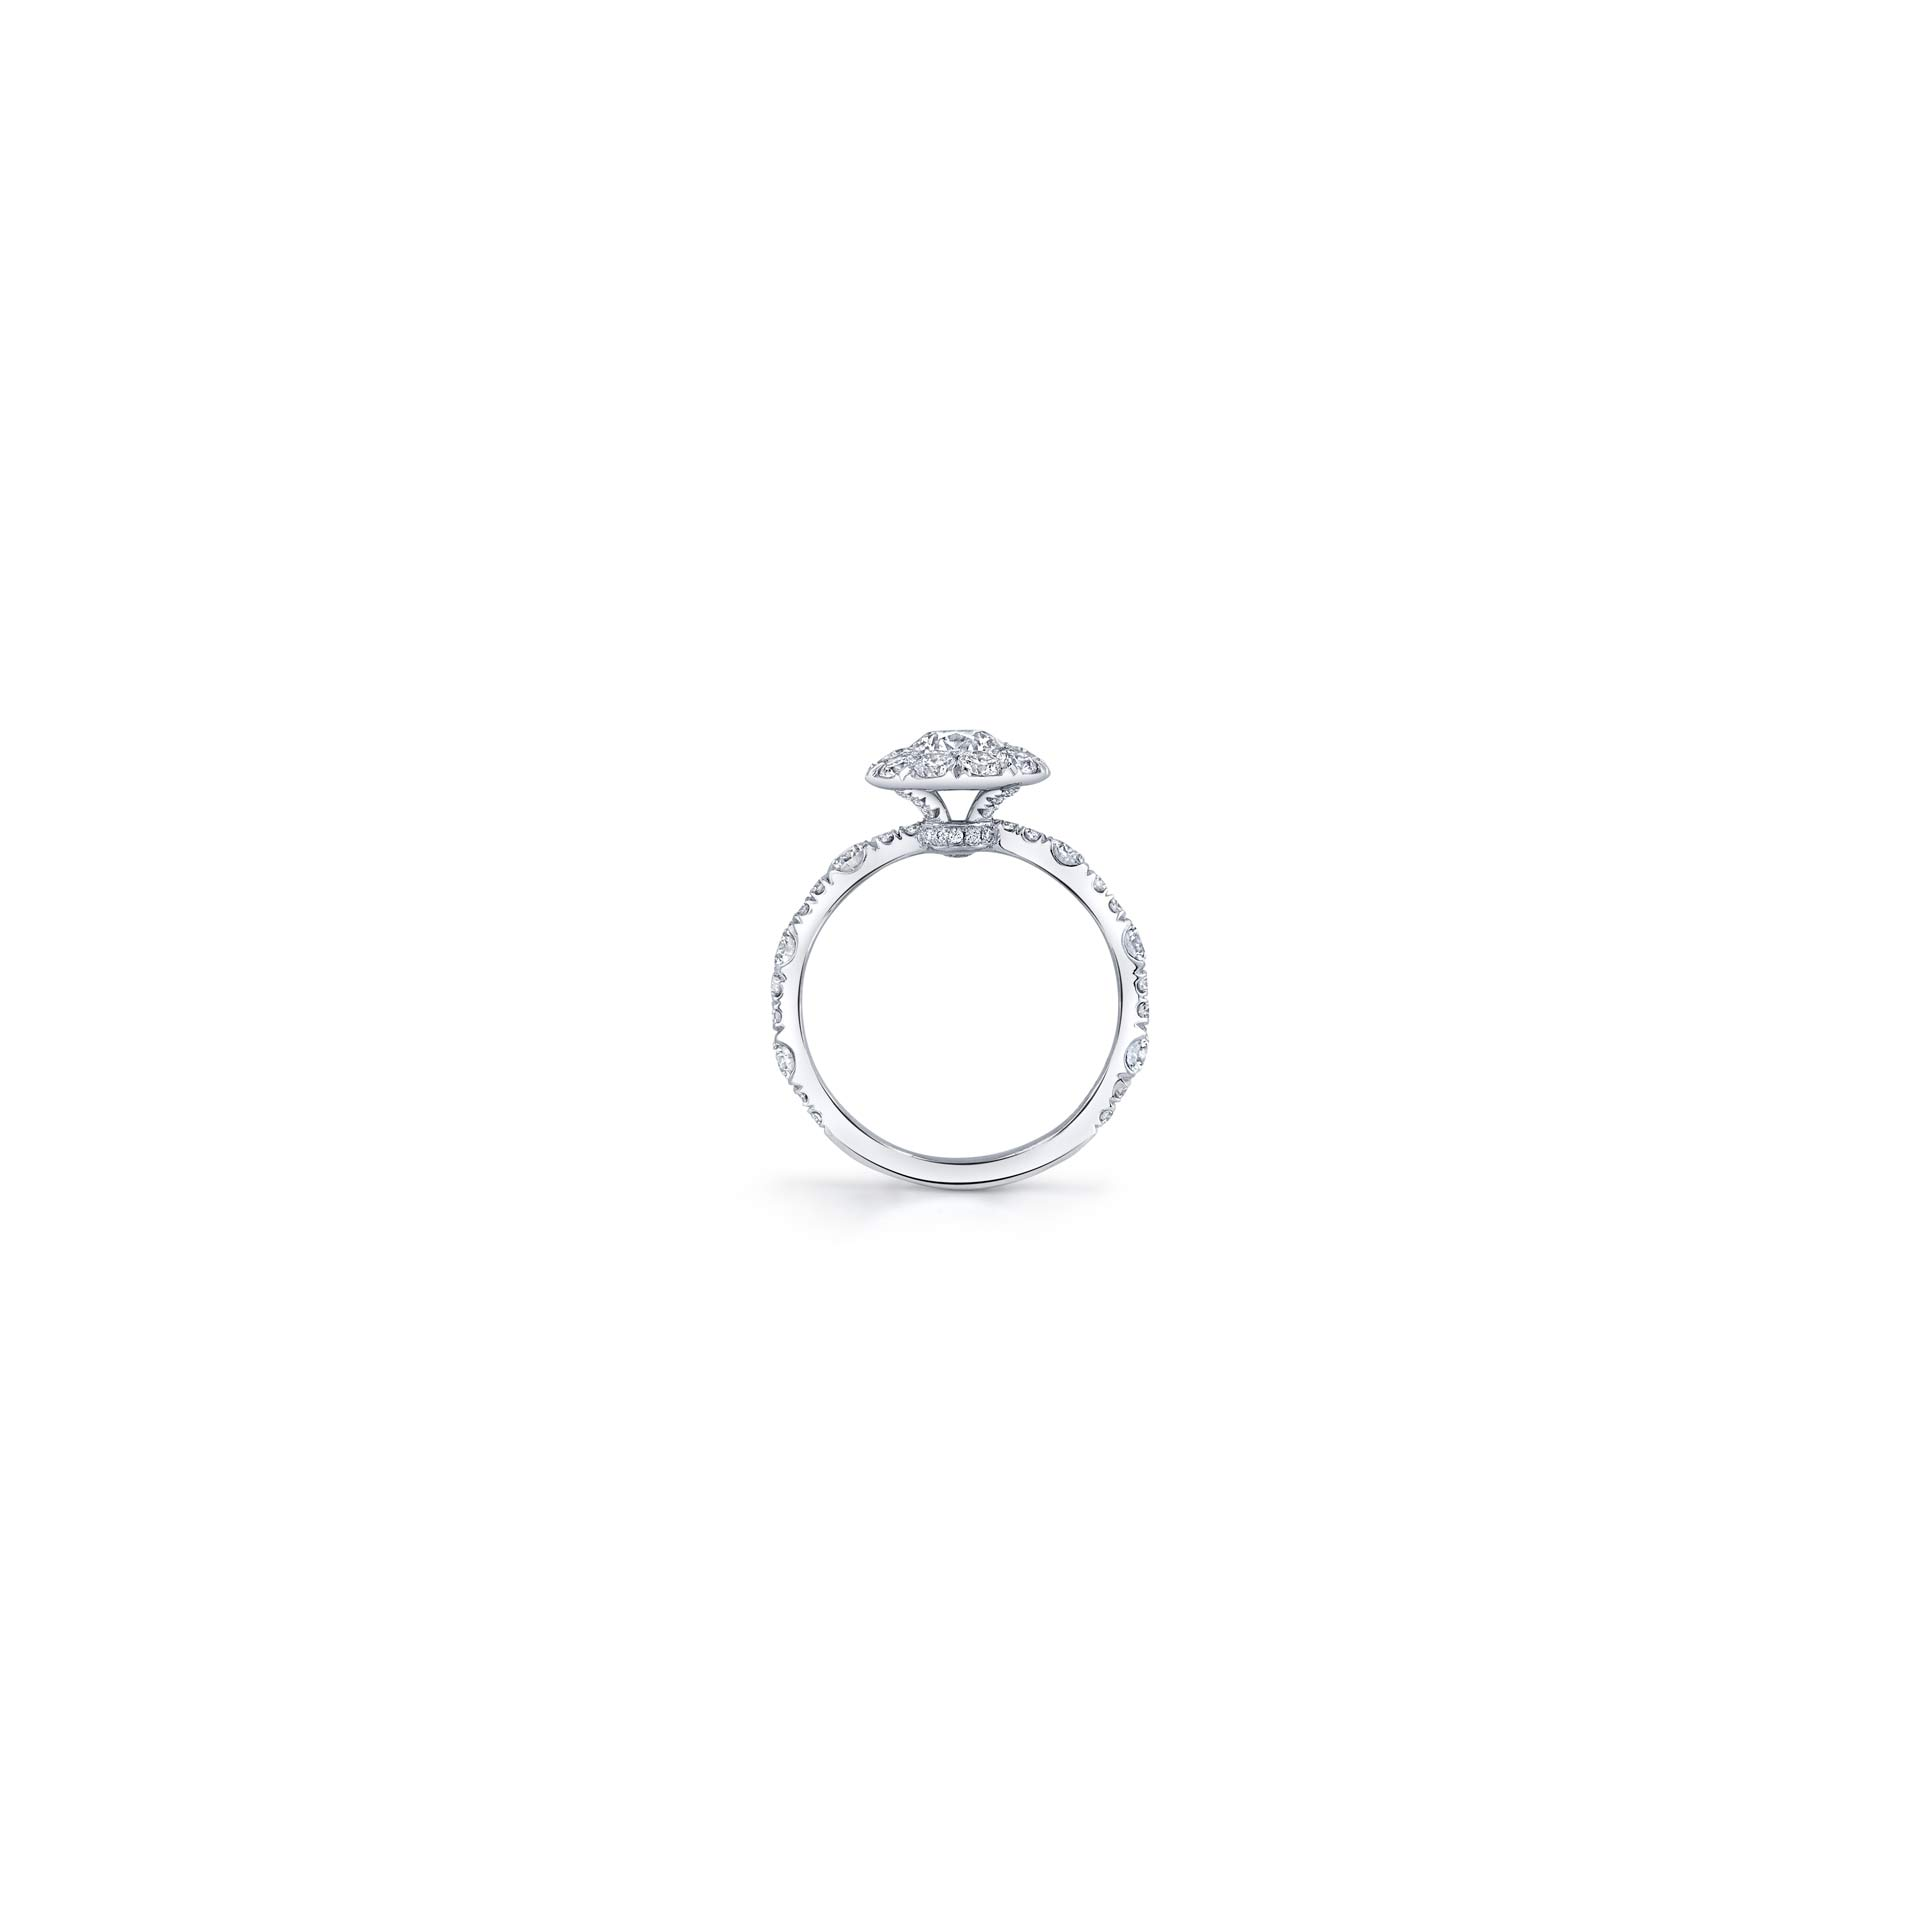 Yvonne Floating Round Brilliant Seamless Solitaire® Three Stone Engagement Ring with a diamond pavé wave in 18k White Gold Standing View by Oui by Jean Dousset